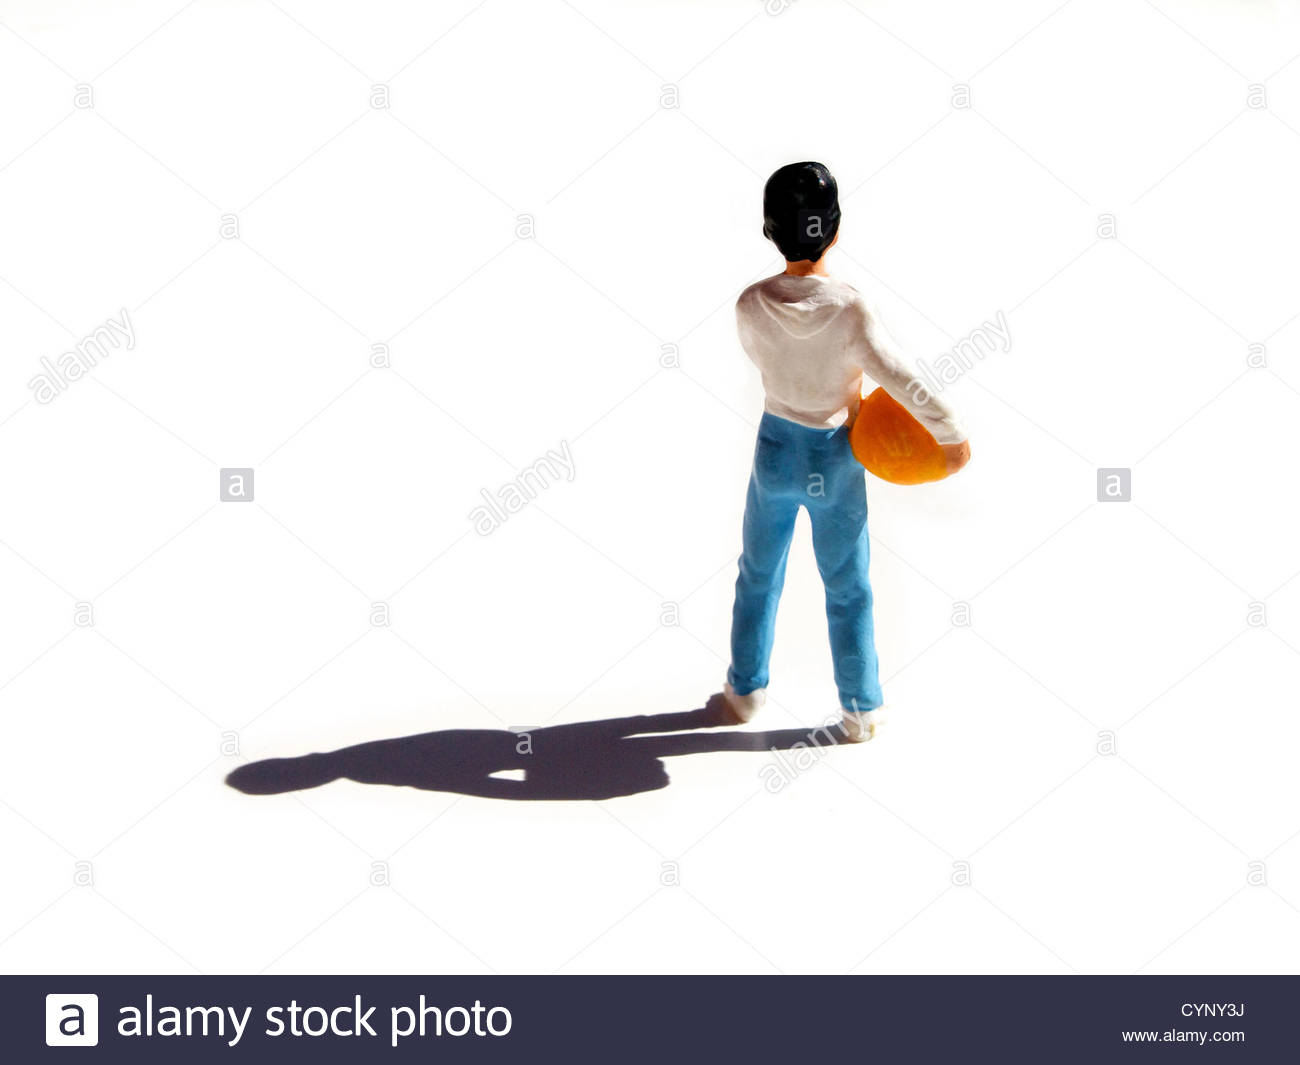 Small toy figure of child Stock Photo